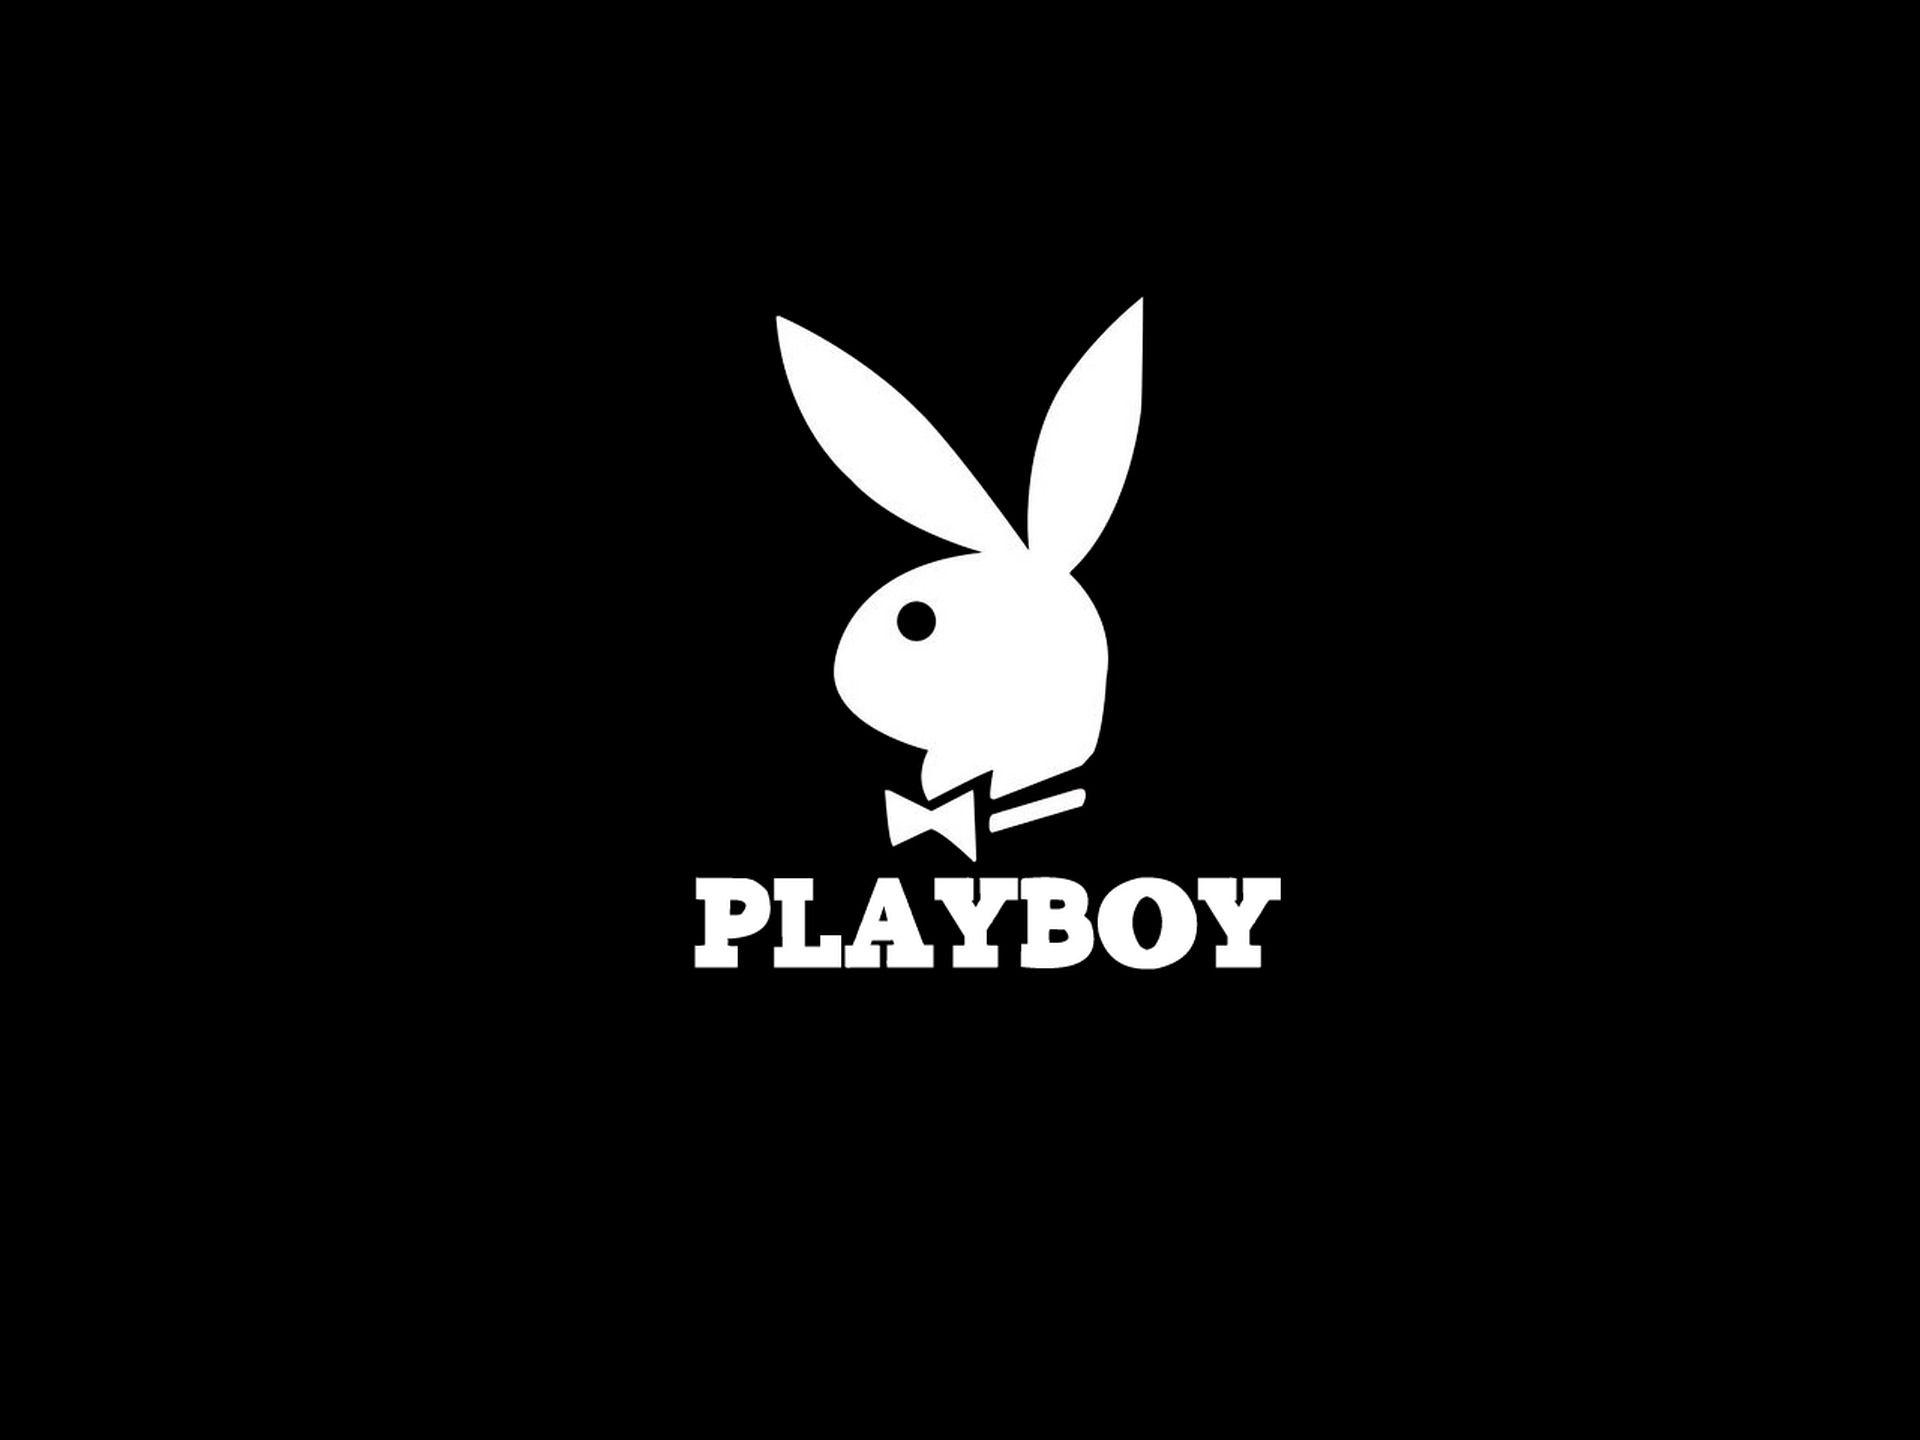 Playboy Bunny Logo Wallpapers Wallpaper Cave